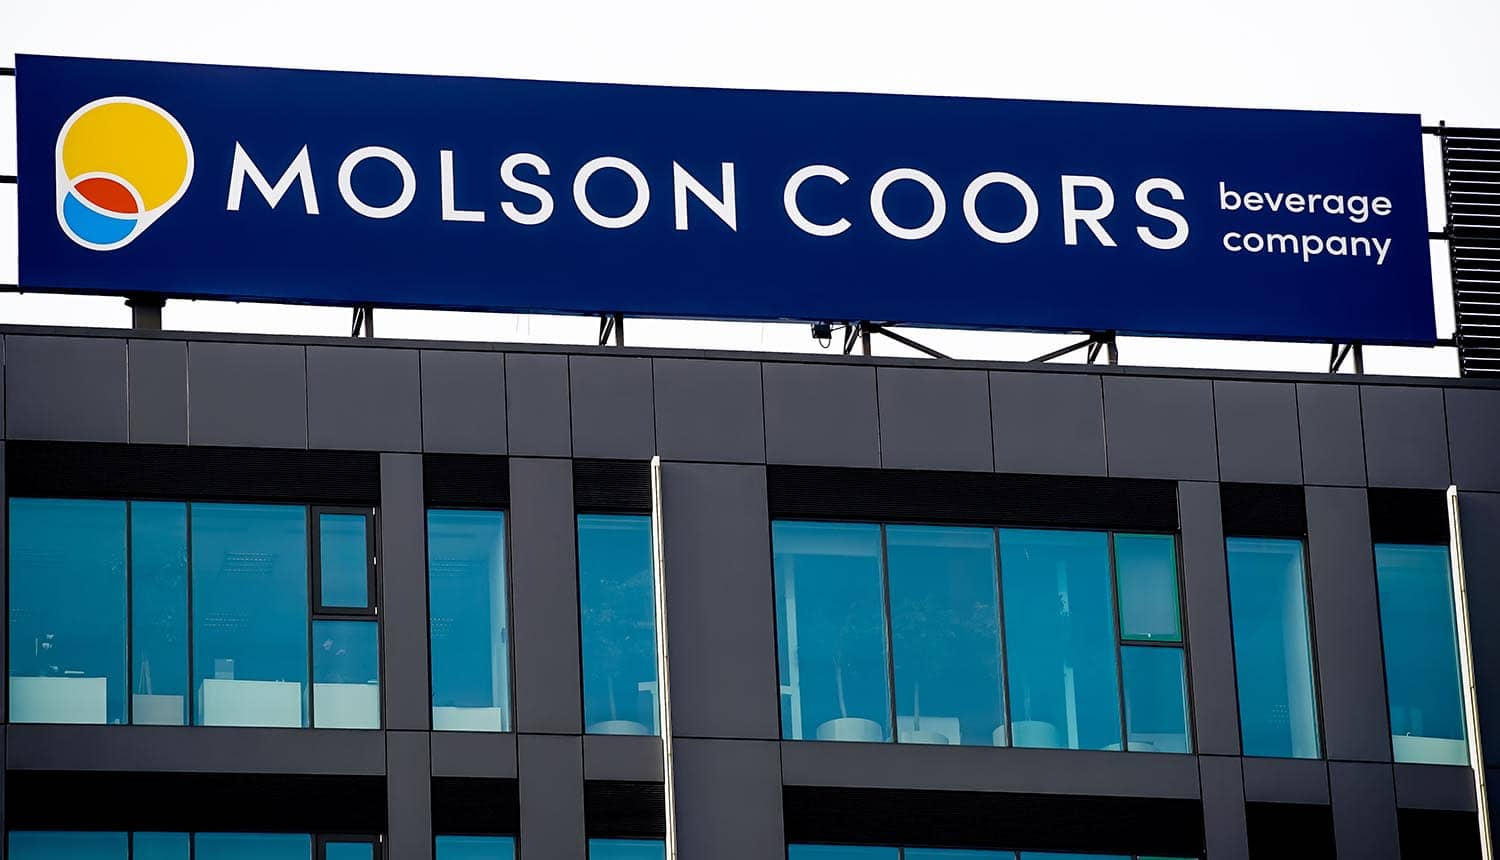 Logo of Molson Coors displayed on the top of a building showing cyber attack